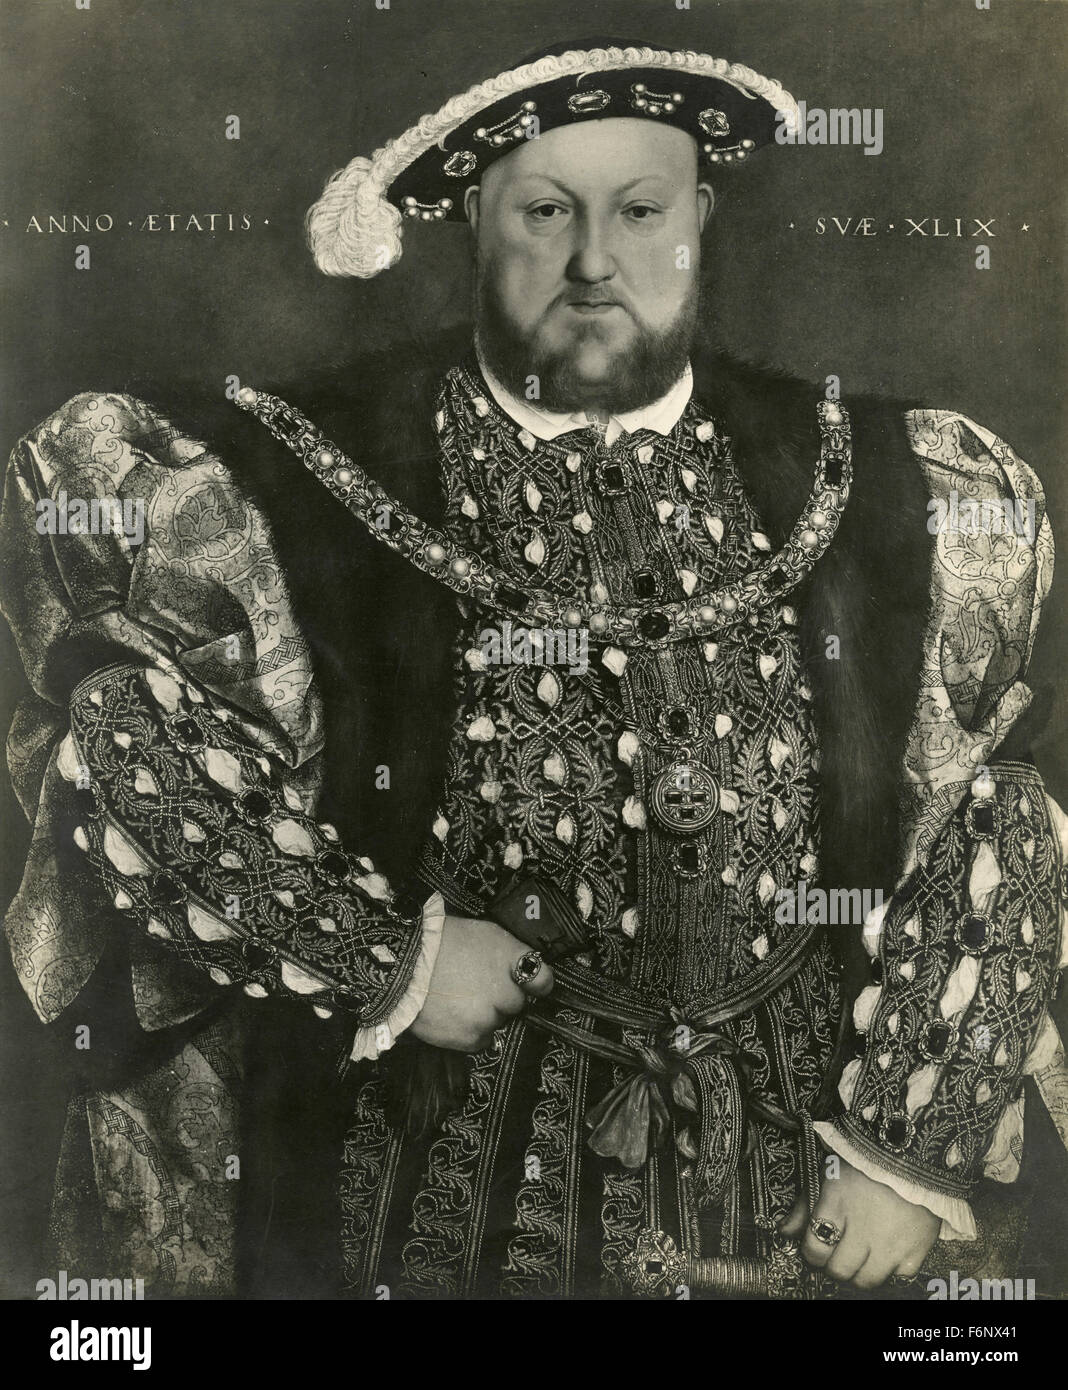 Portrait of Henry VIII painted by Holbein - Stock Image